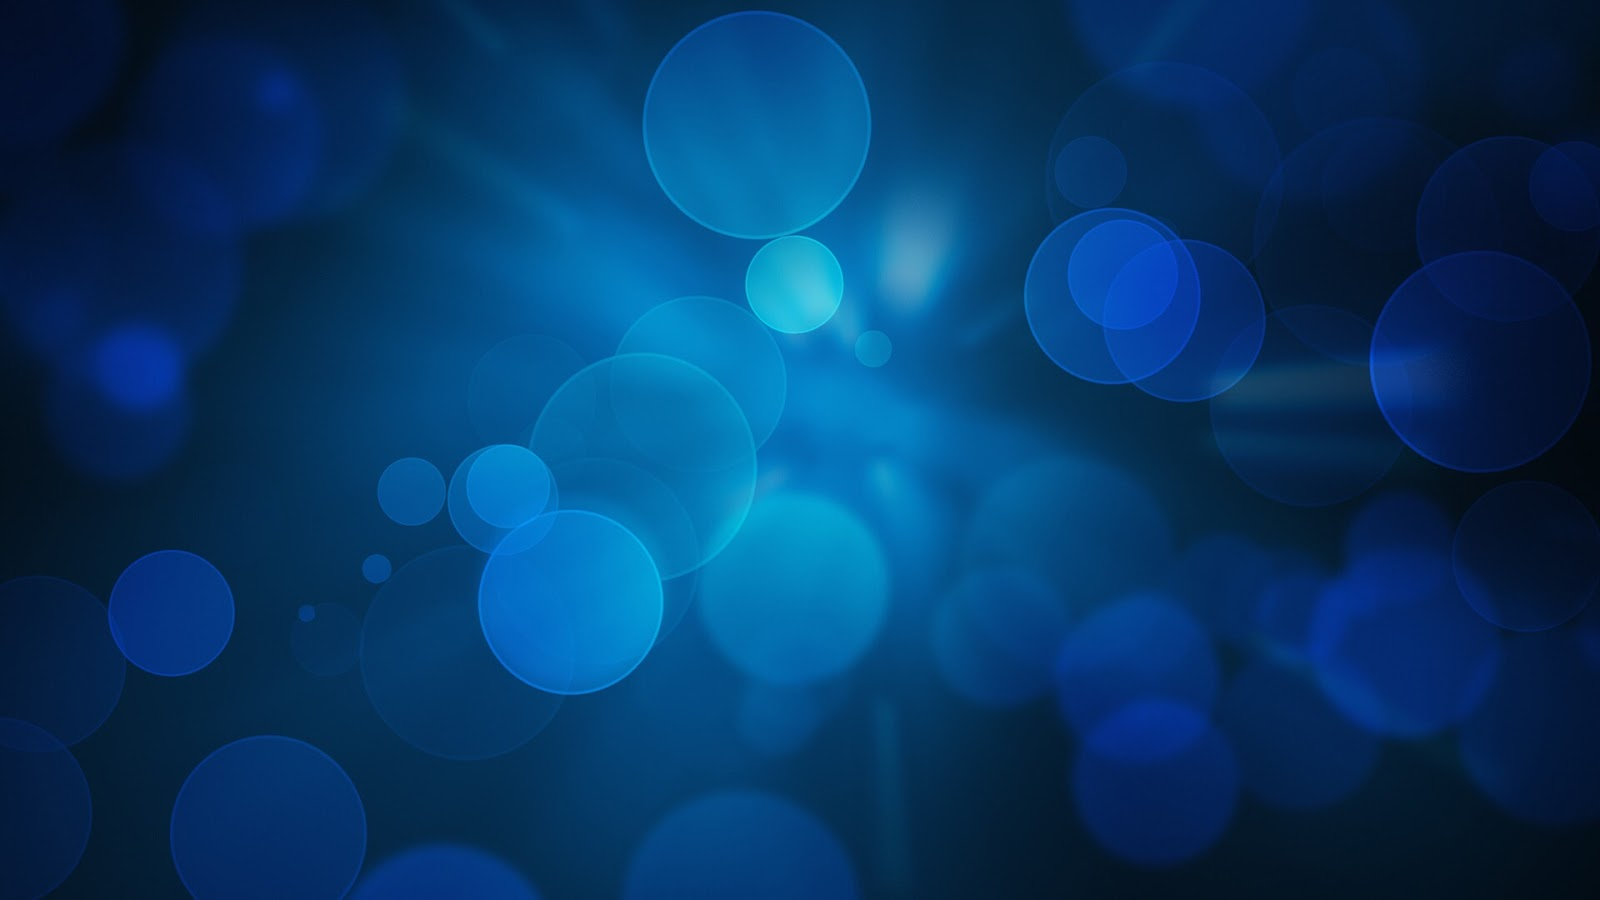 Kodi Backgrounds 81 images in Collection Page 1 1600x900